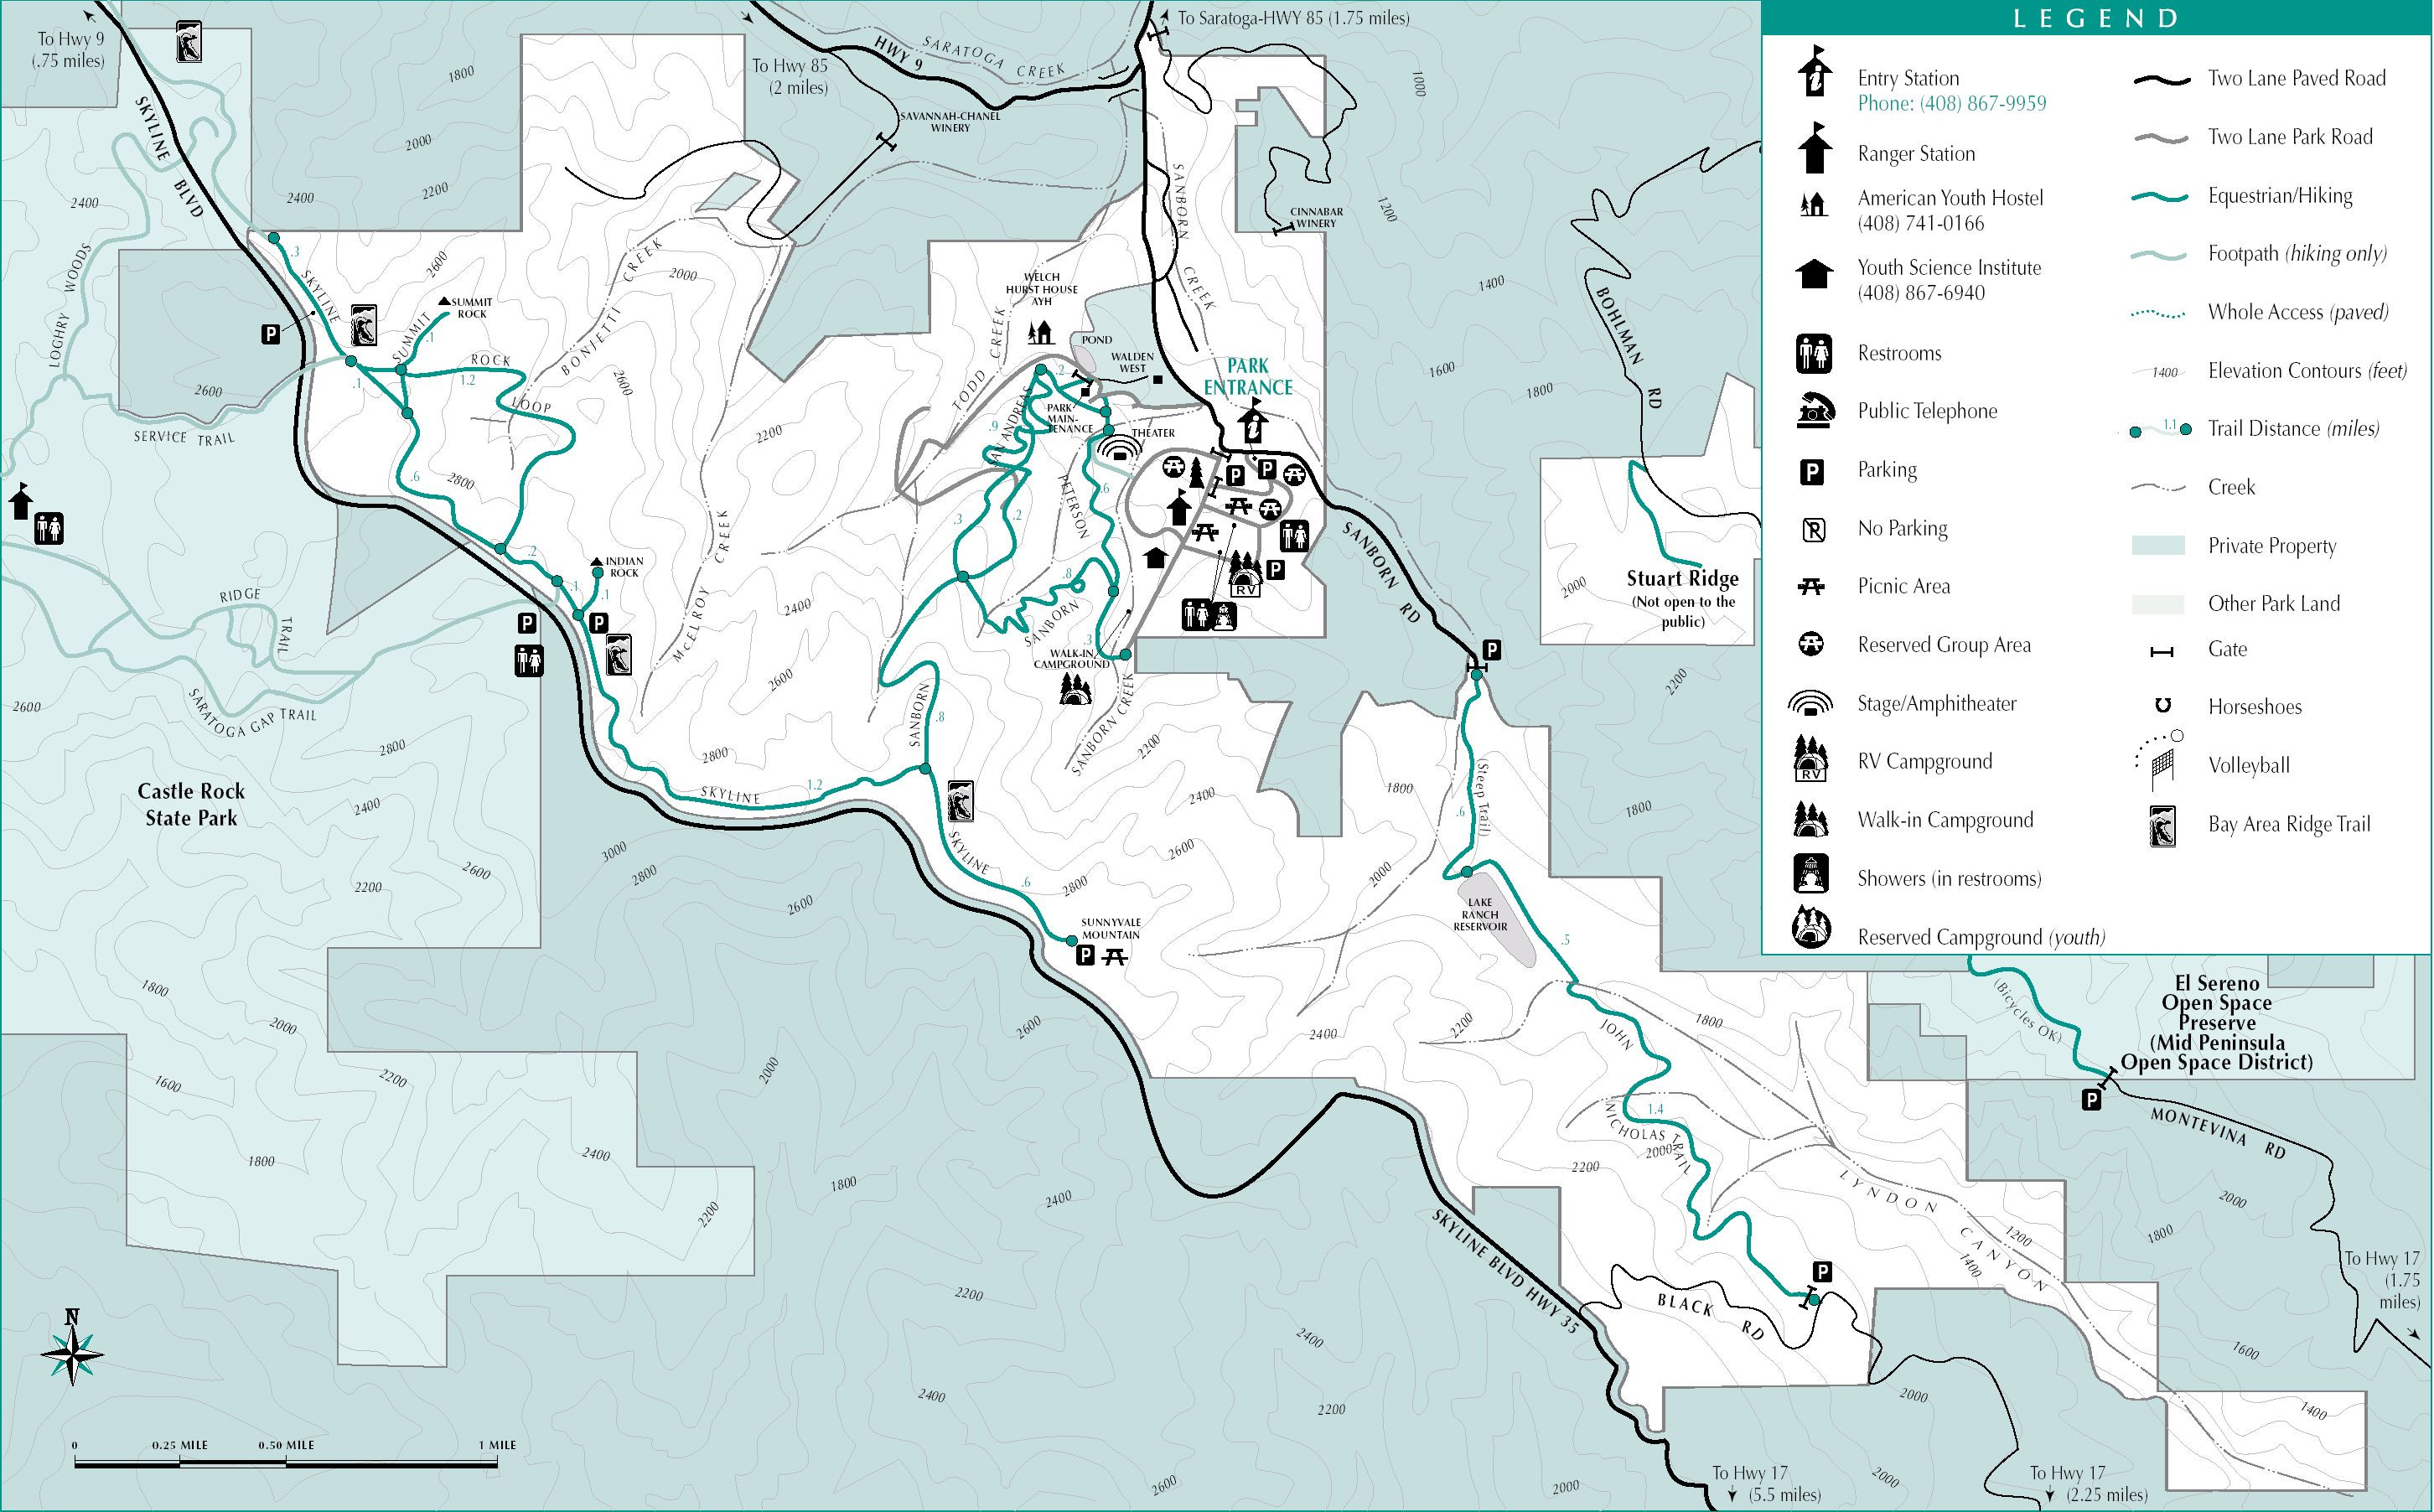 I 5 Rest Areas California Map Free Printable Expertgps Calibrated - California Rest Stops Map